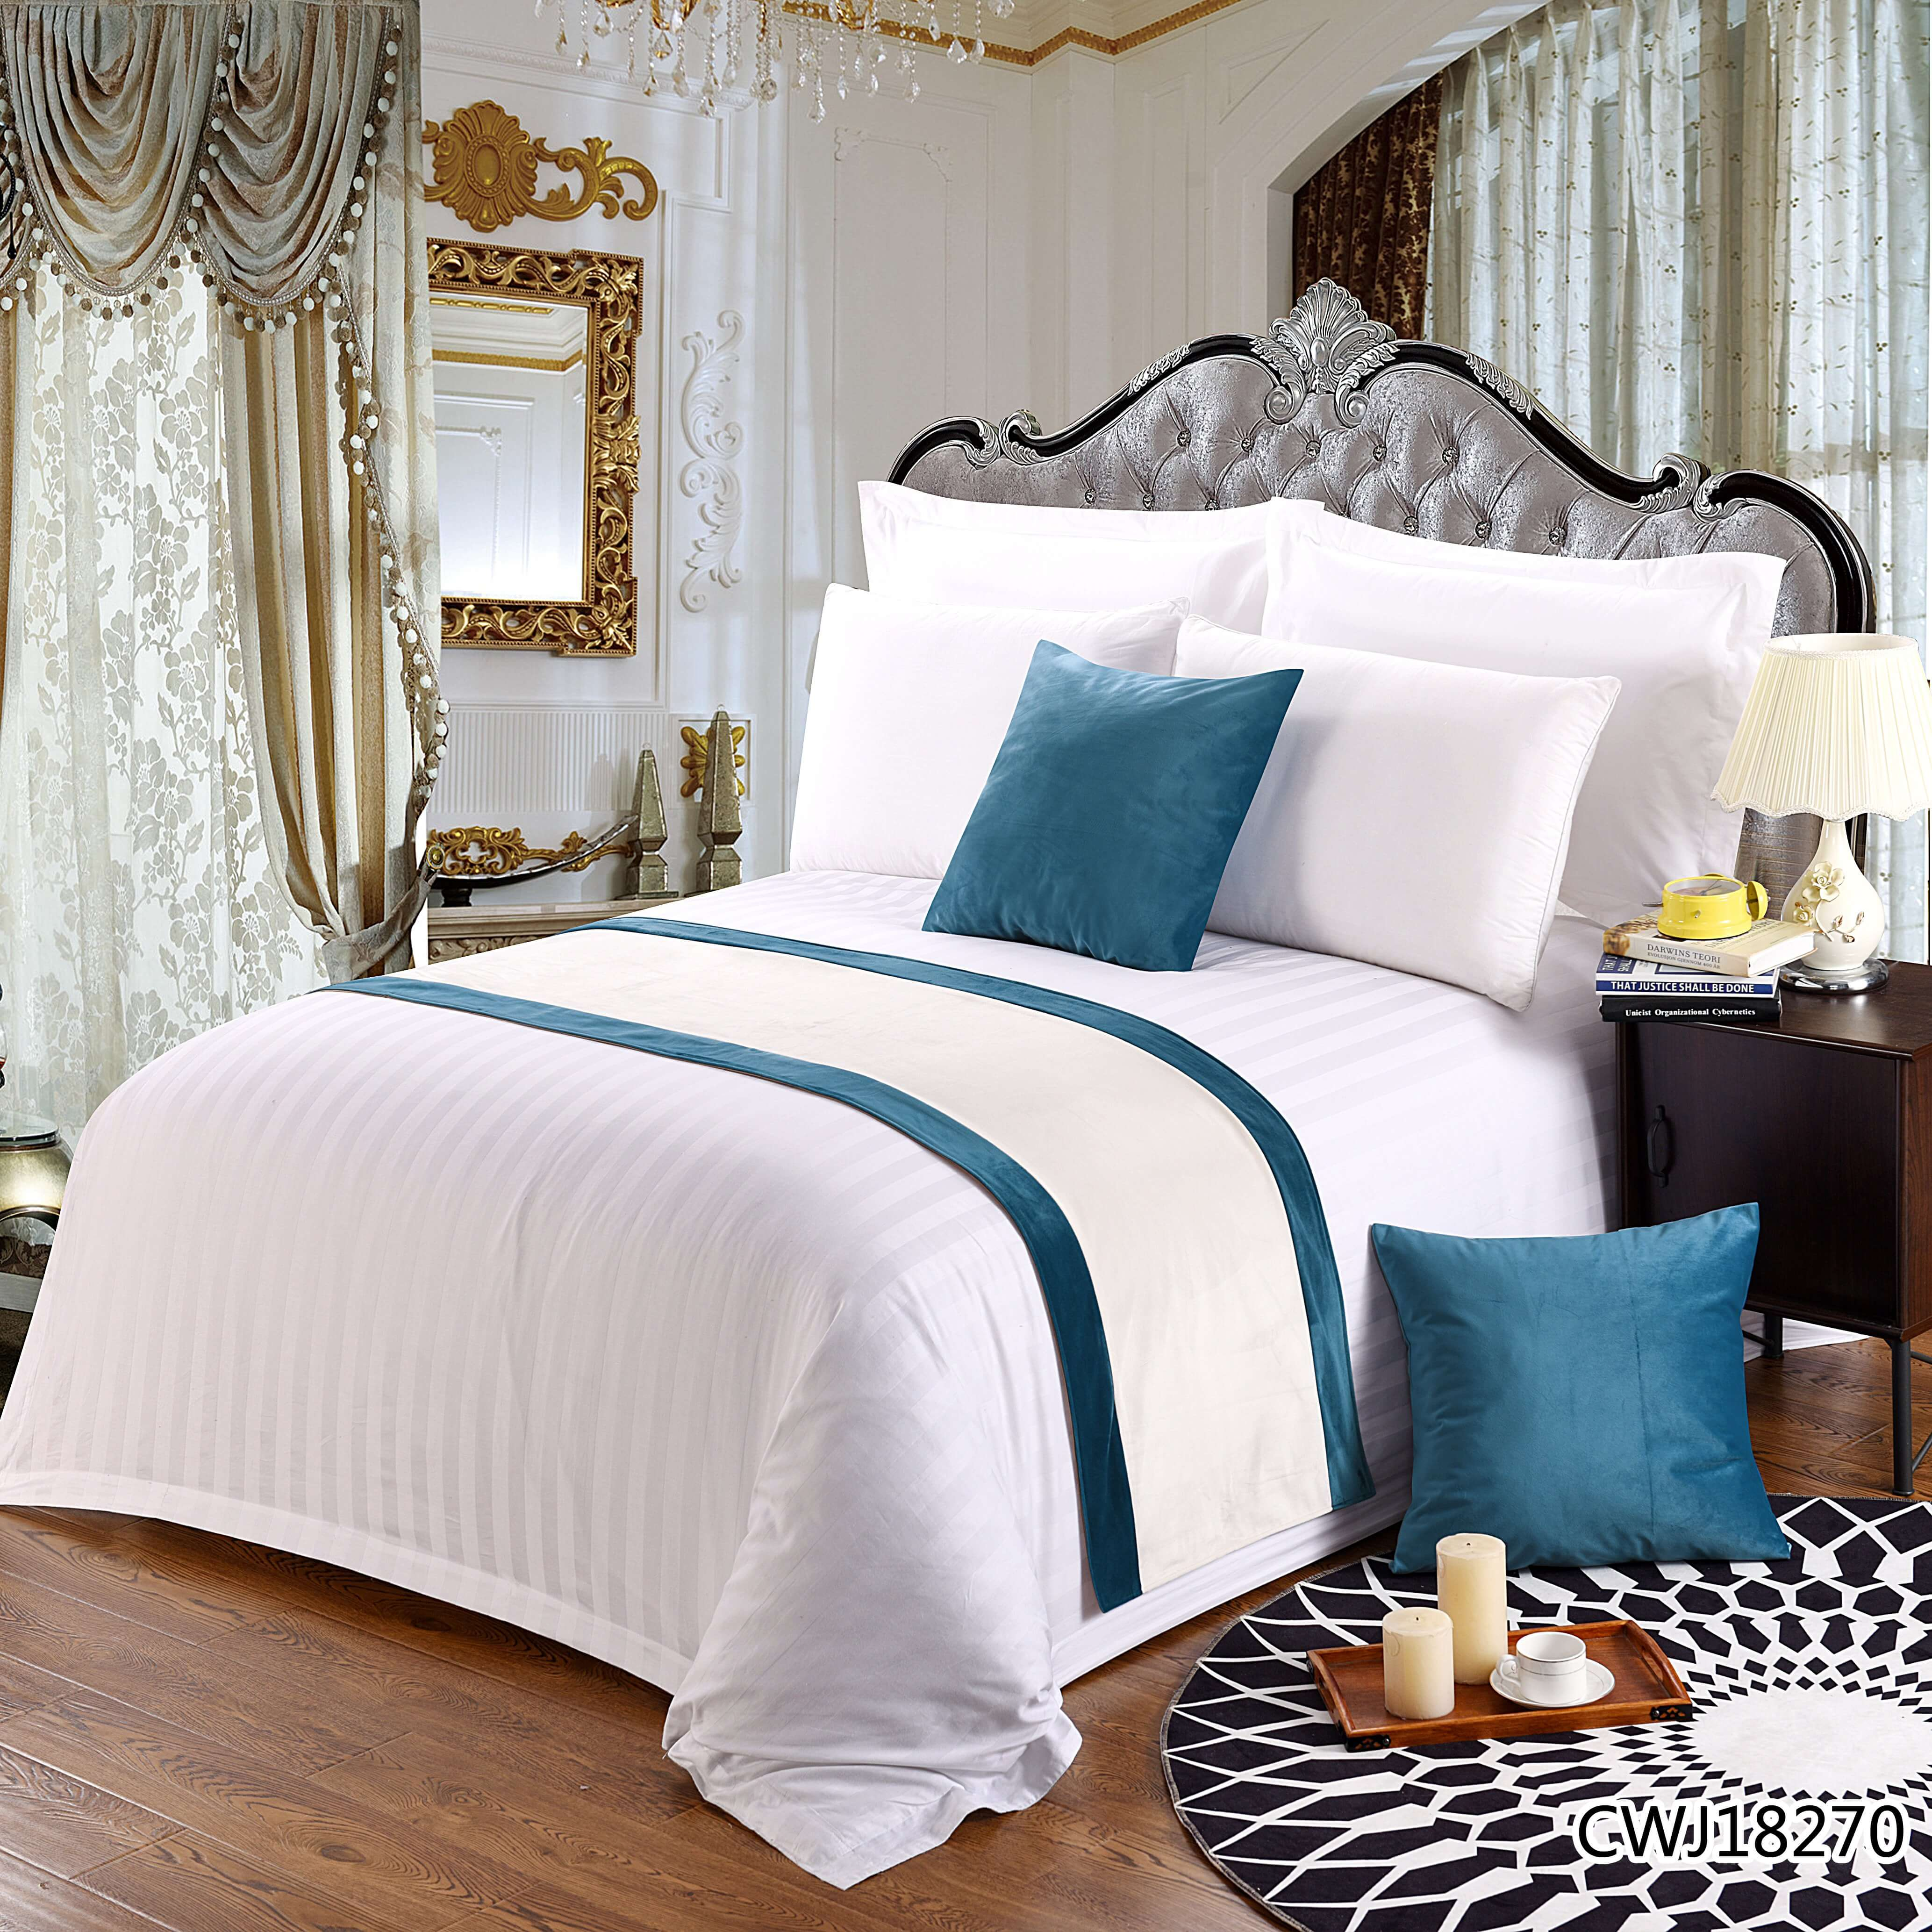 Top of bed decoration | HYC Design